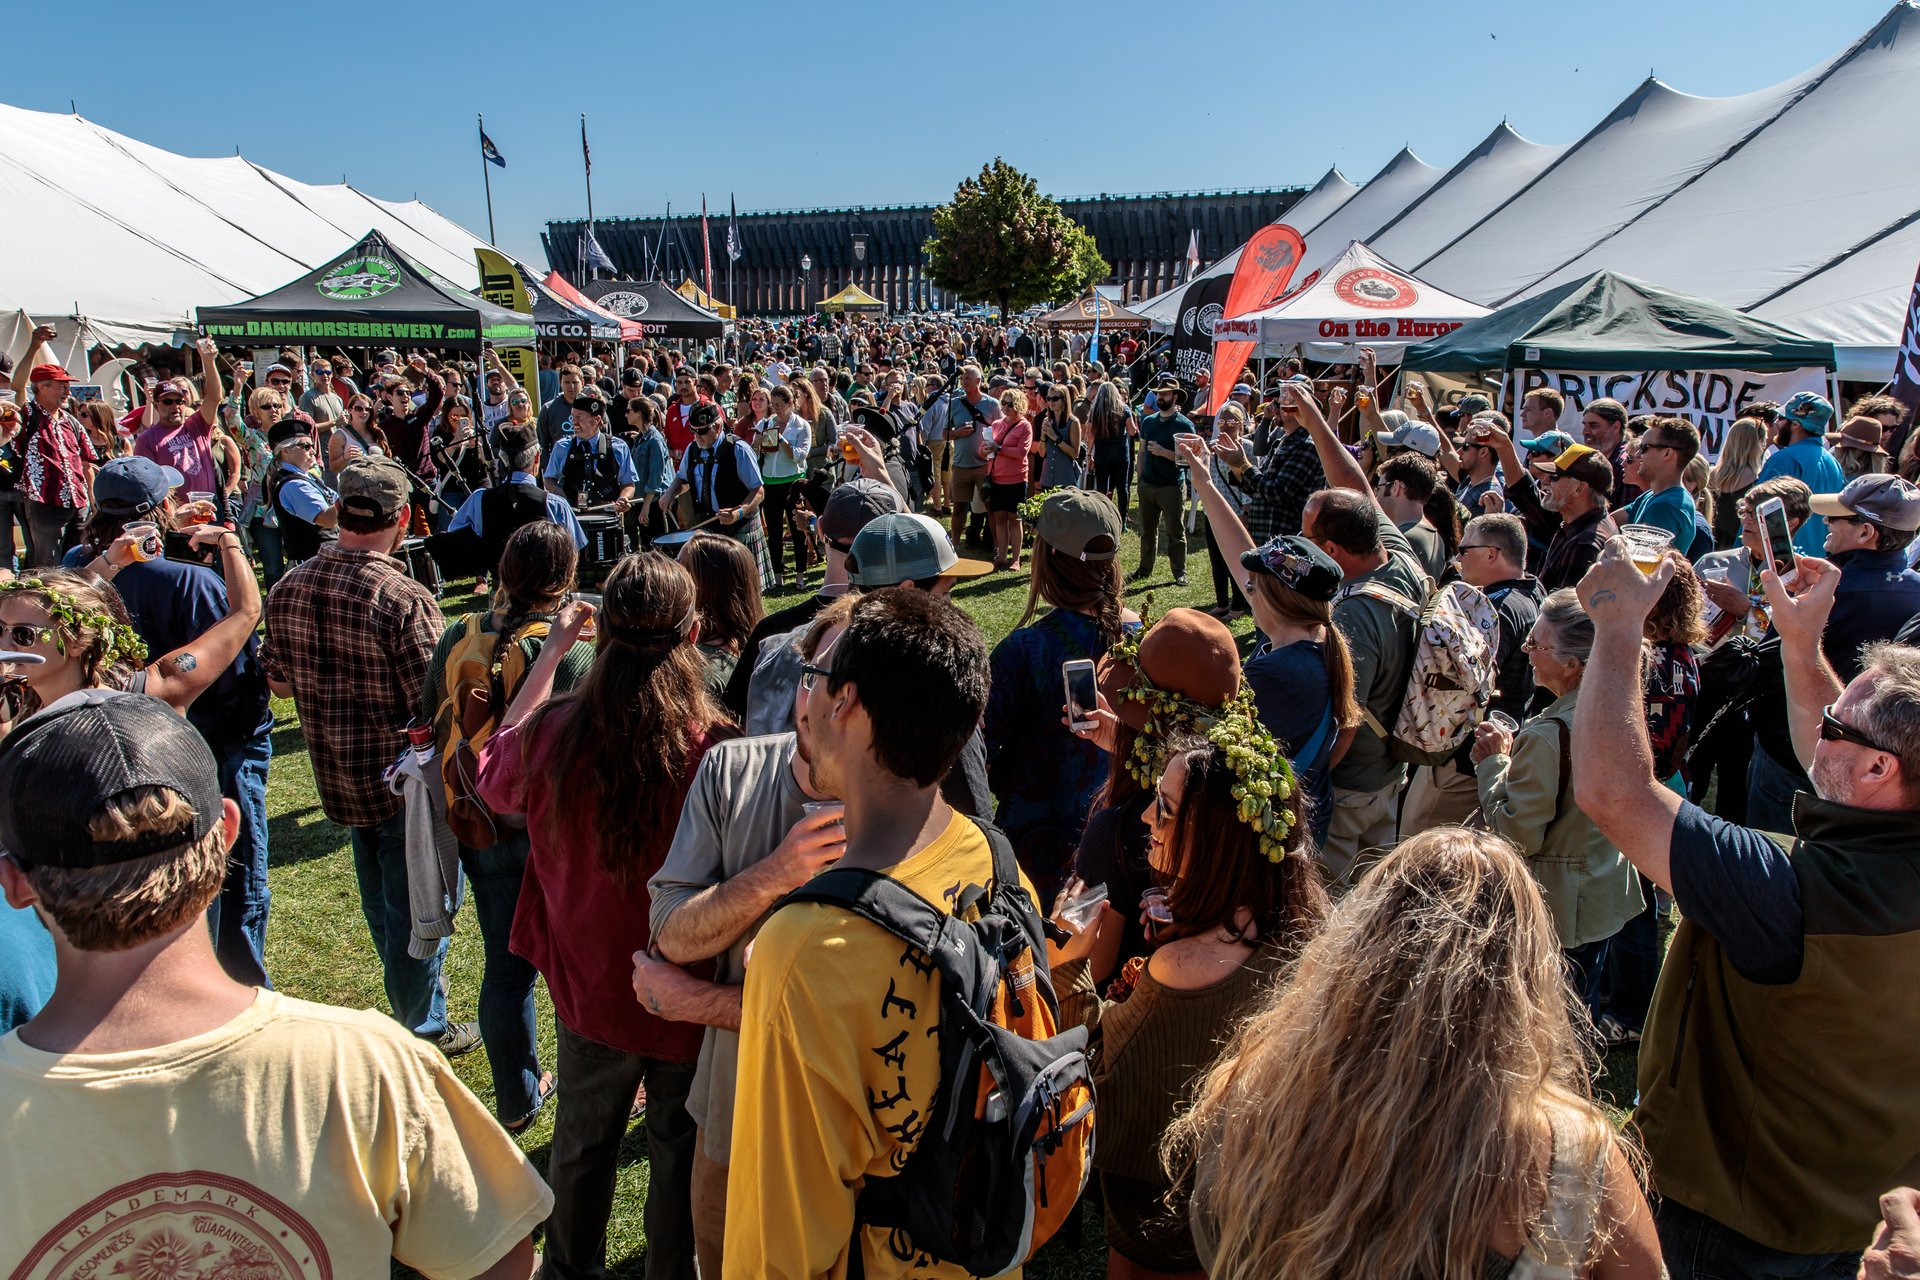 U.P. Fall Beer Festival in Marquette, MI in Midwest 2019 - Best Time